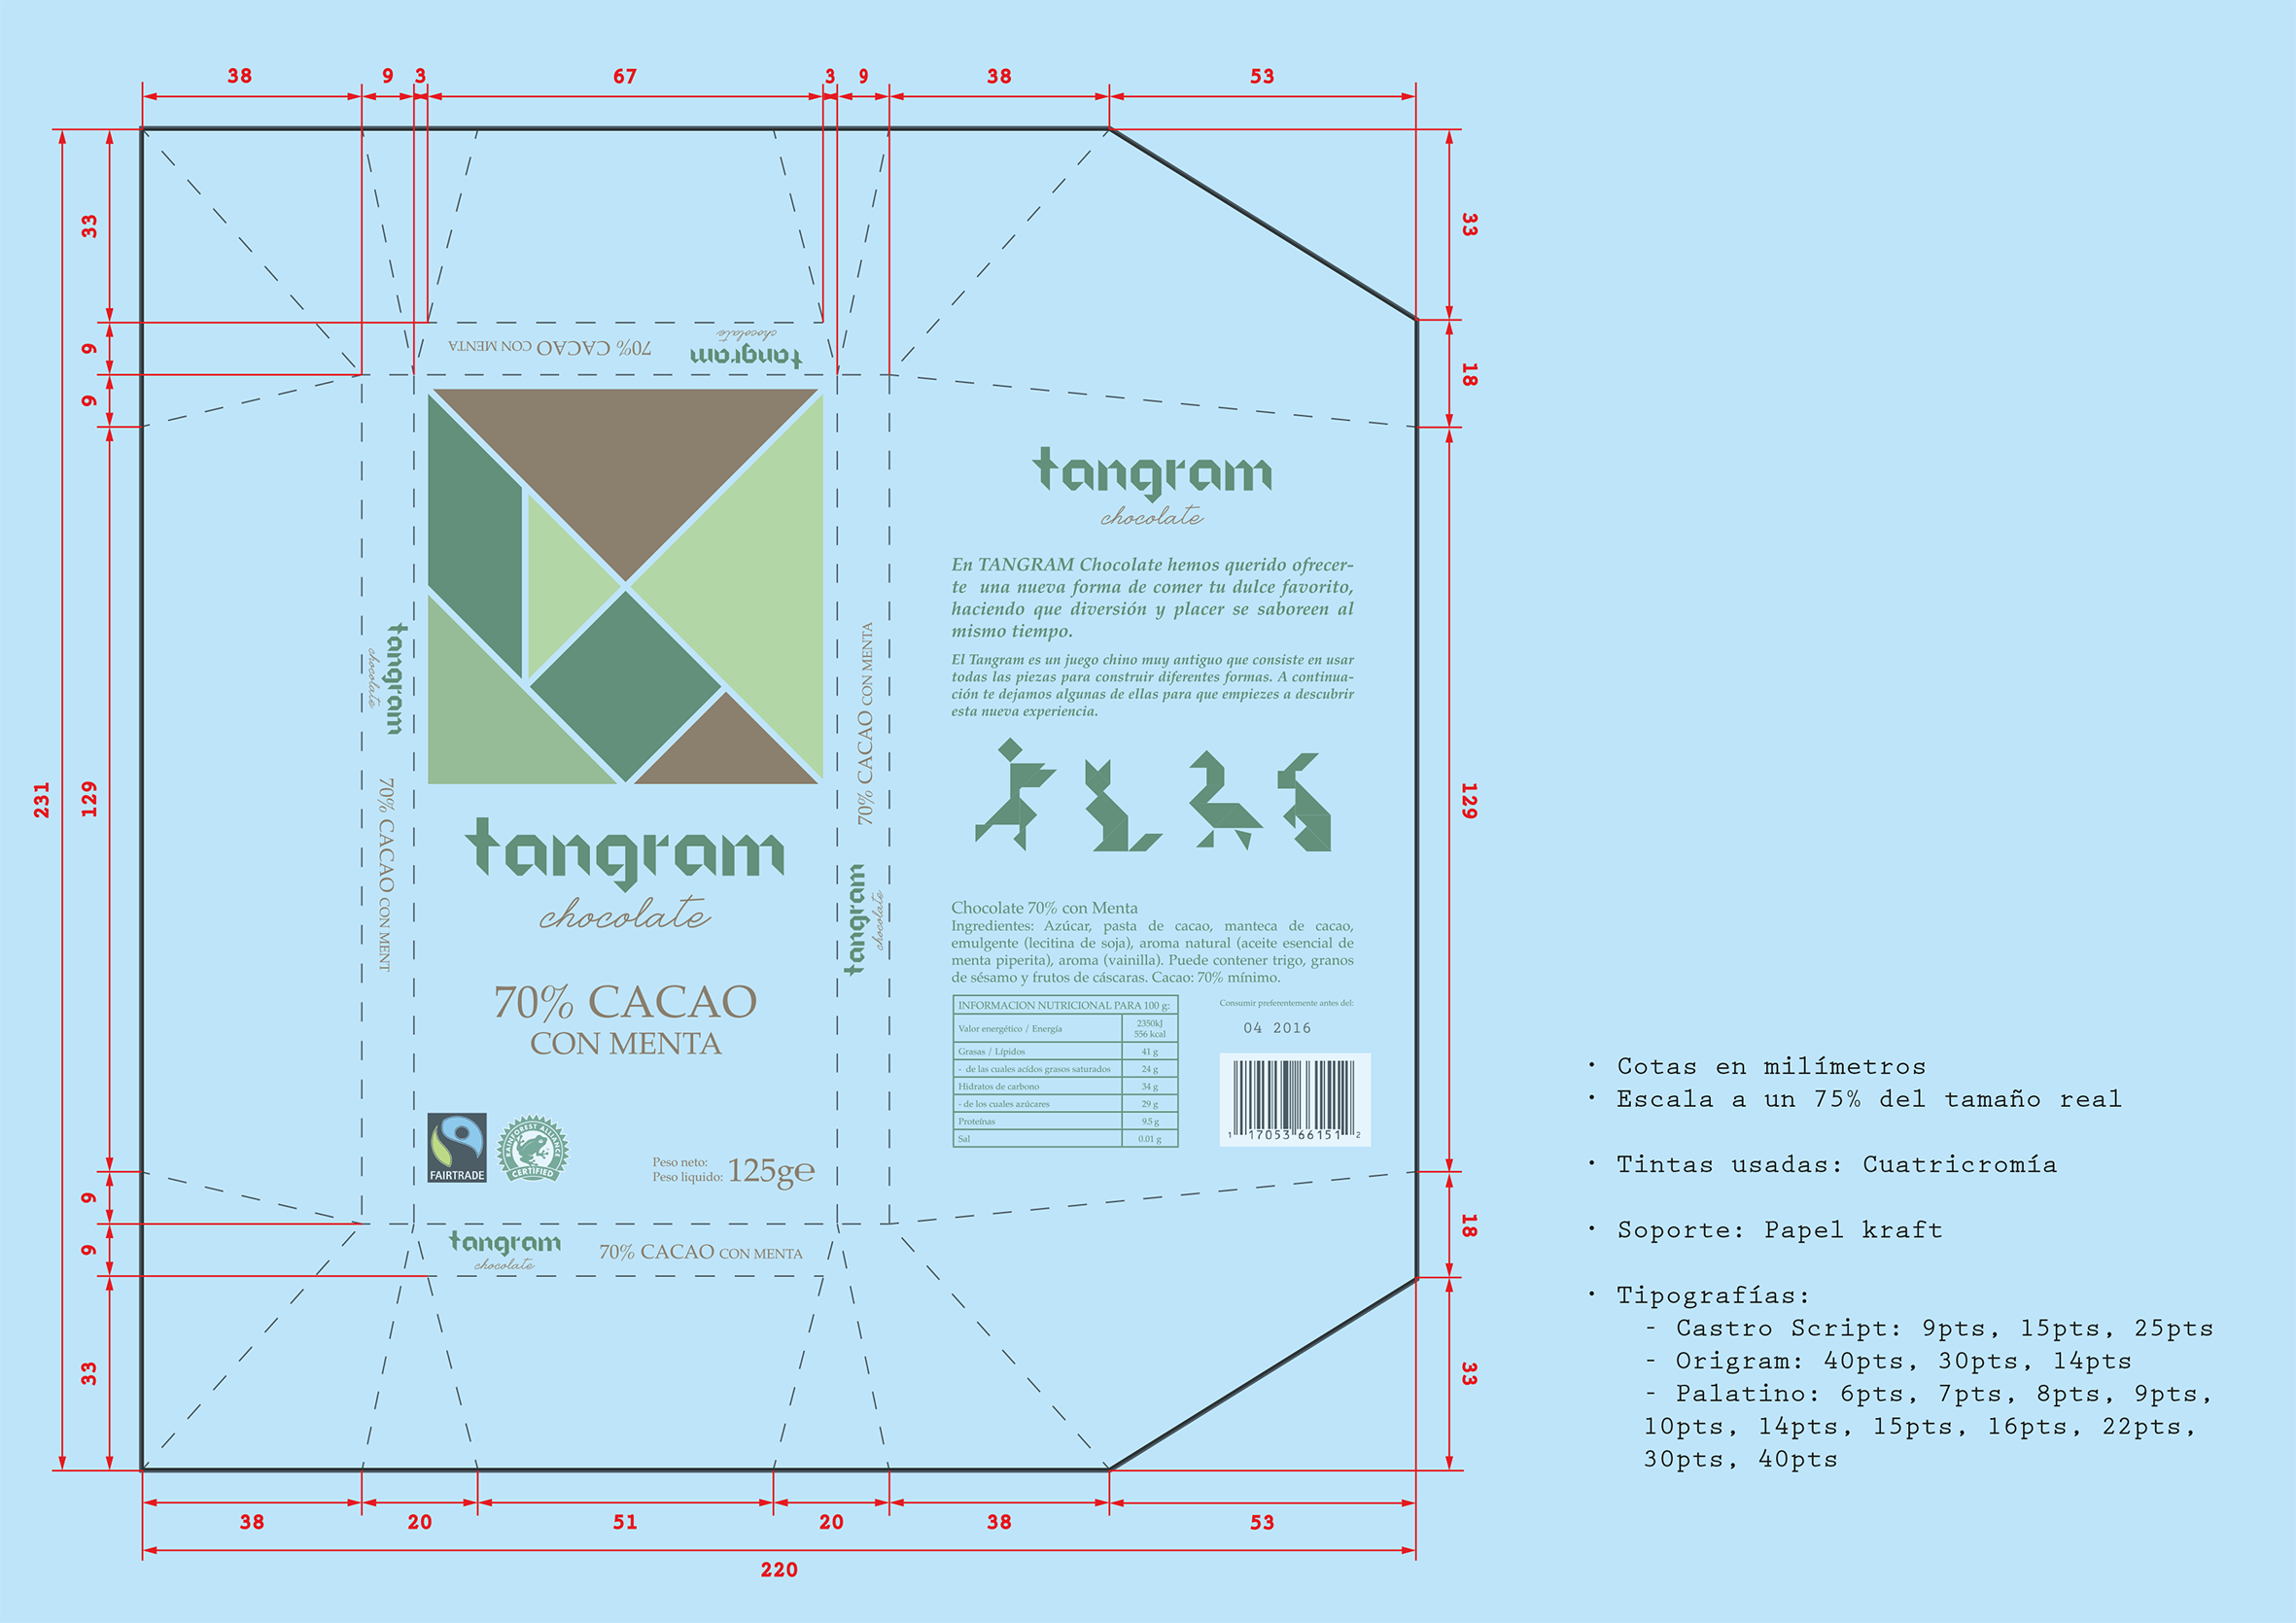 Diseño de Packaging Tangram, cotas.